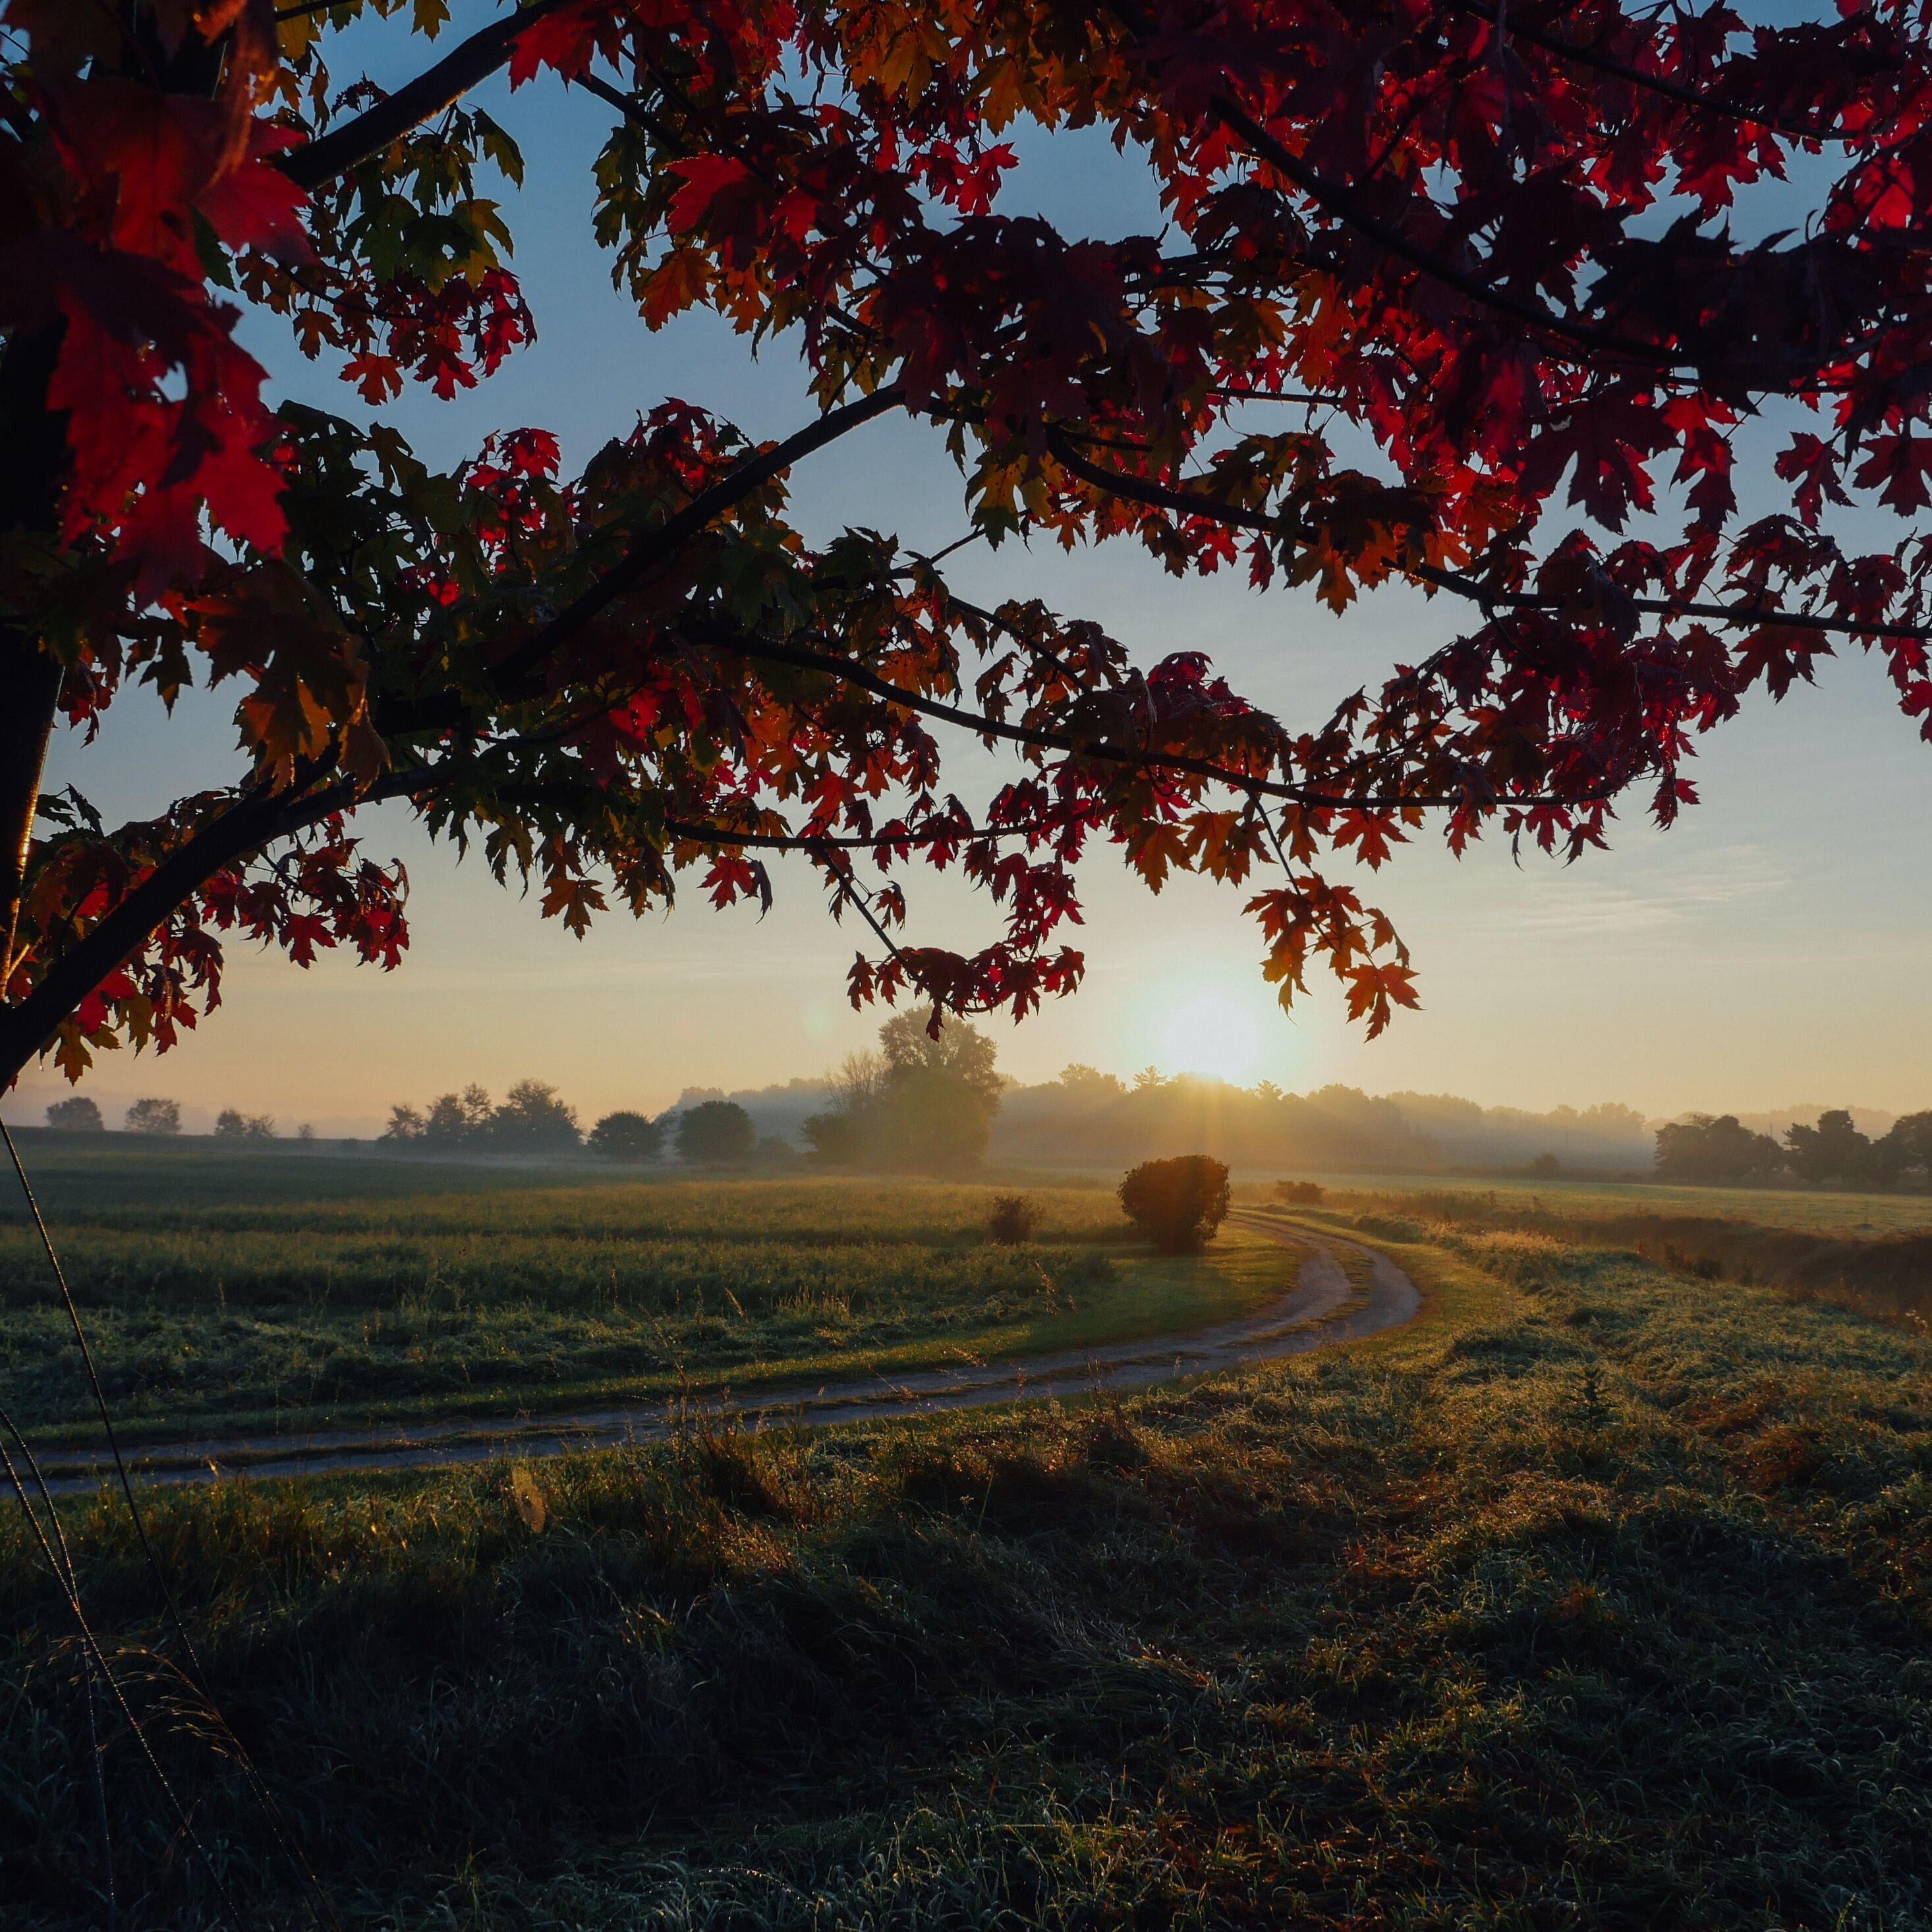 farmland-autumn-trees-5k-2h.jpg